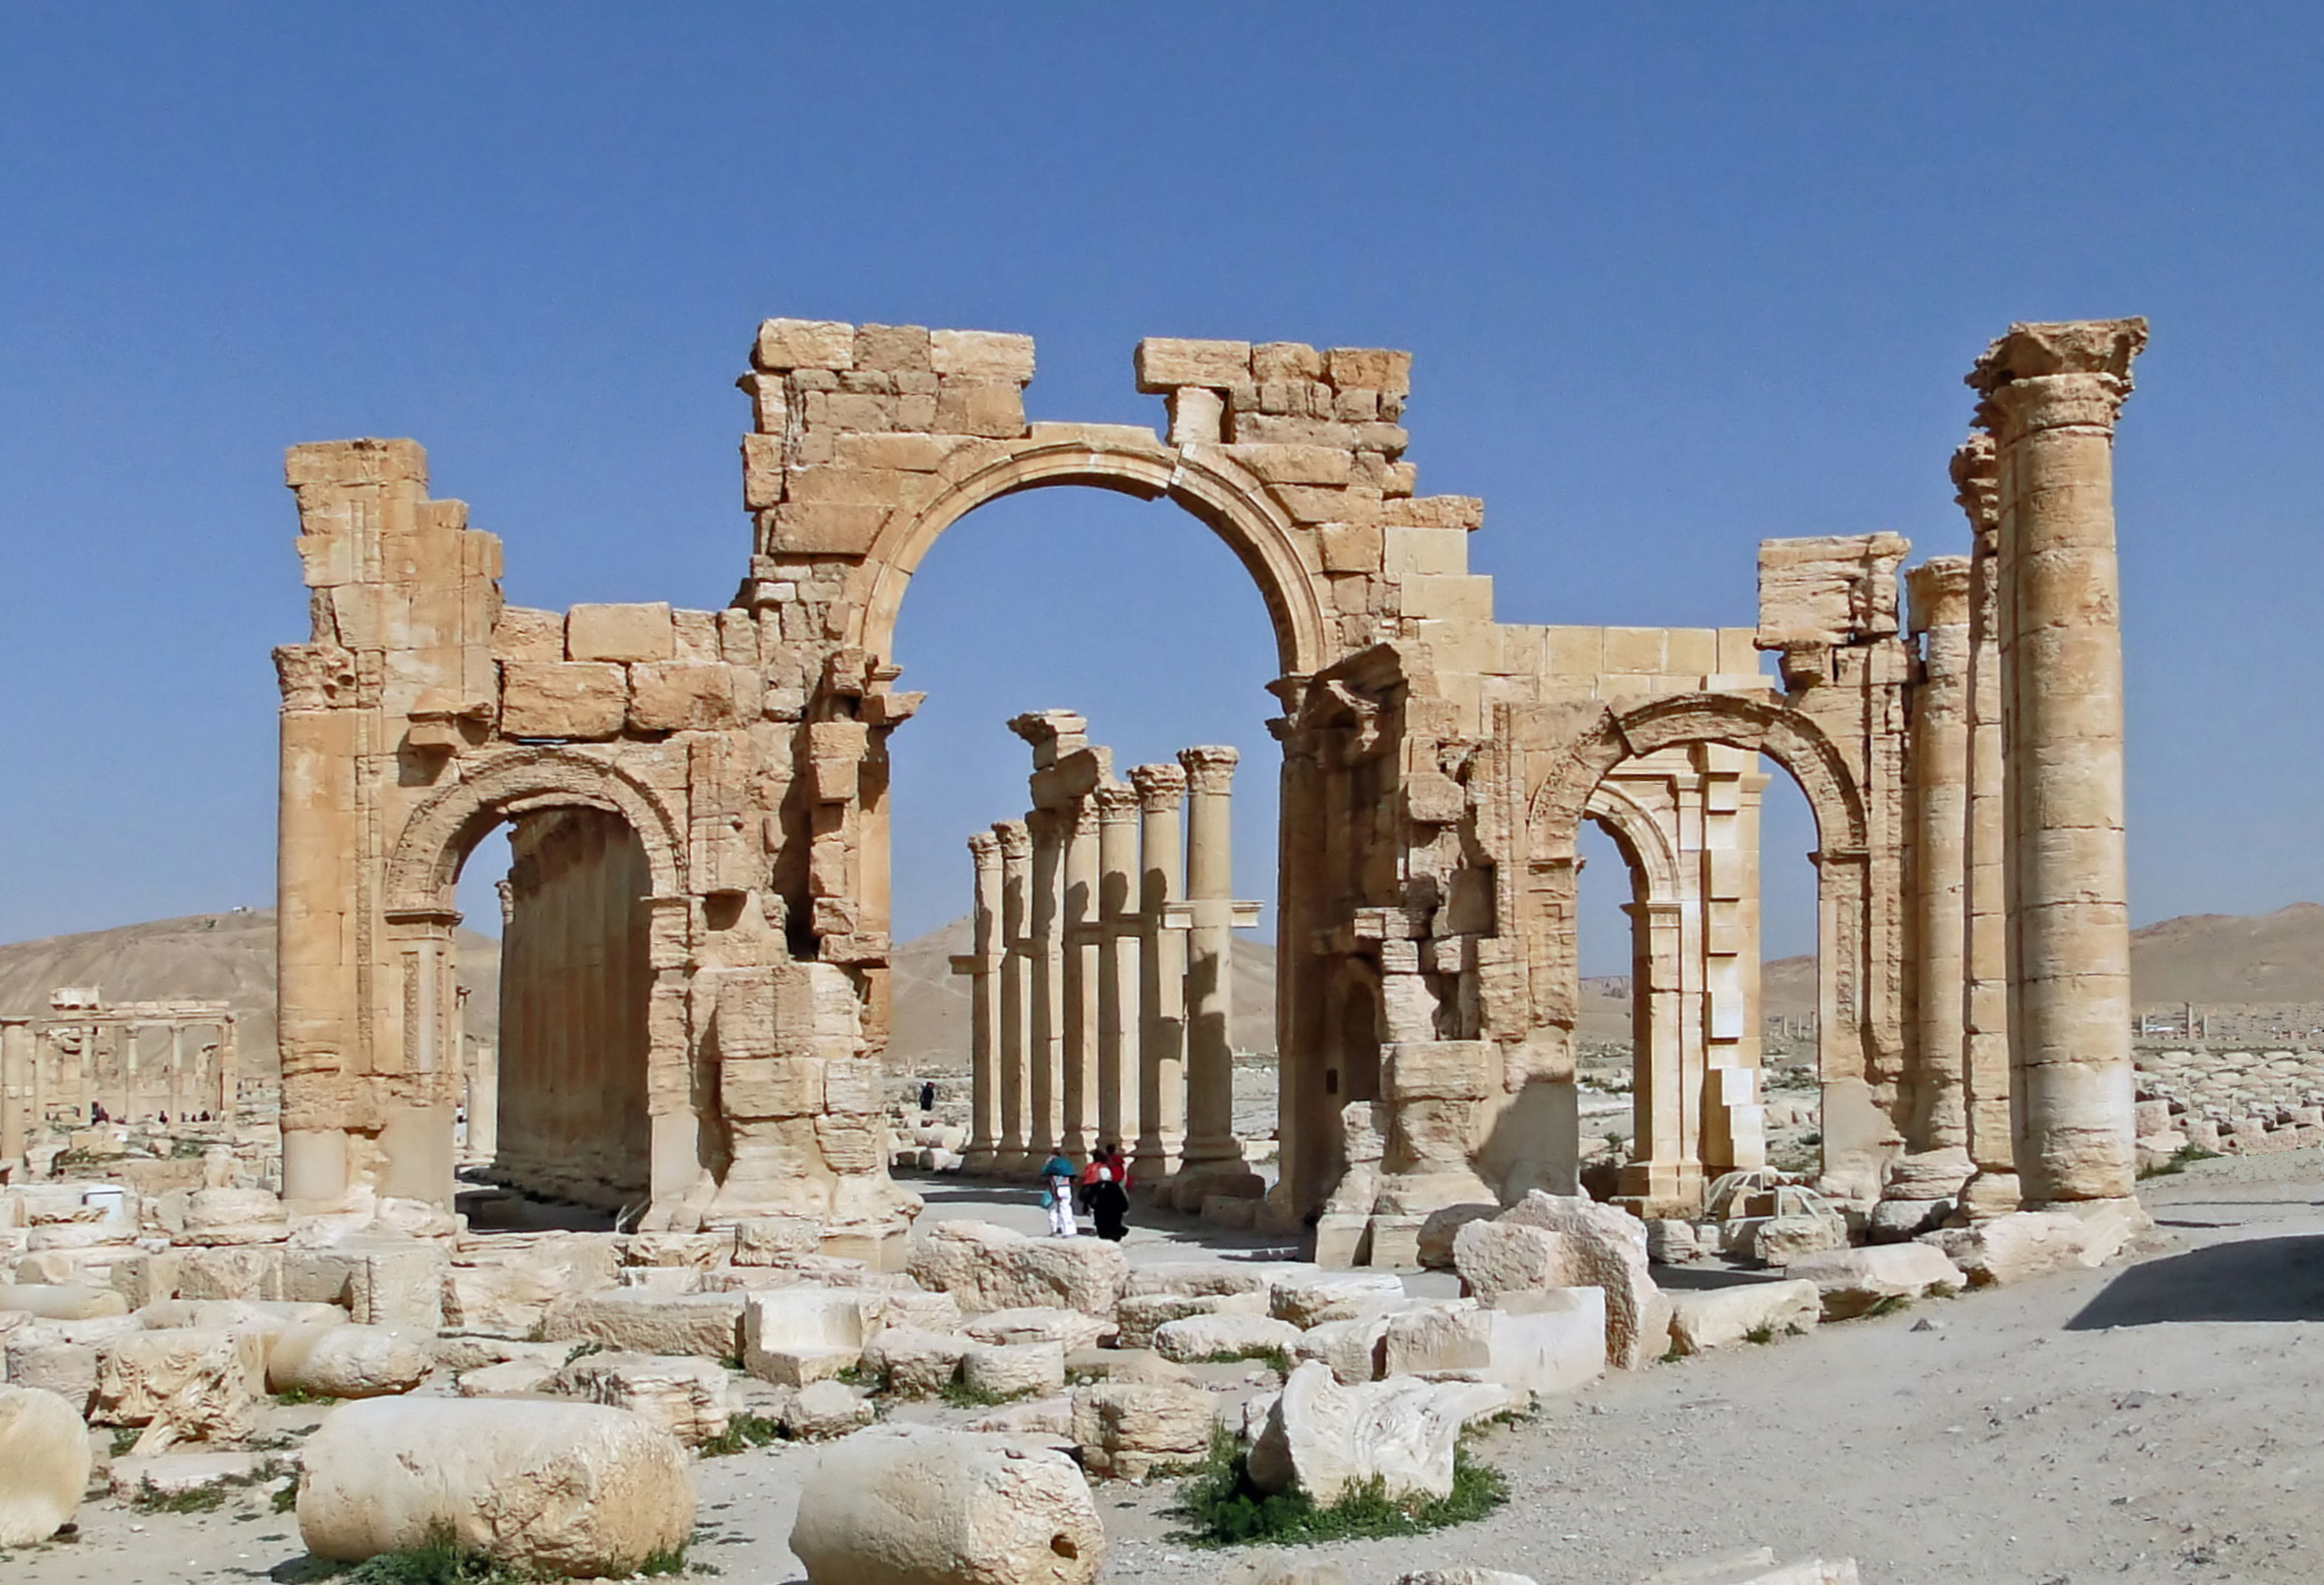 The Monumental Arch of Palmyra (Khaled Hiatlih)